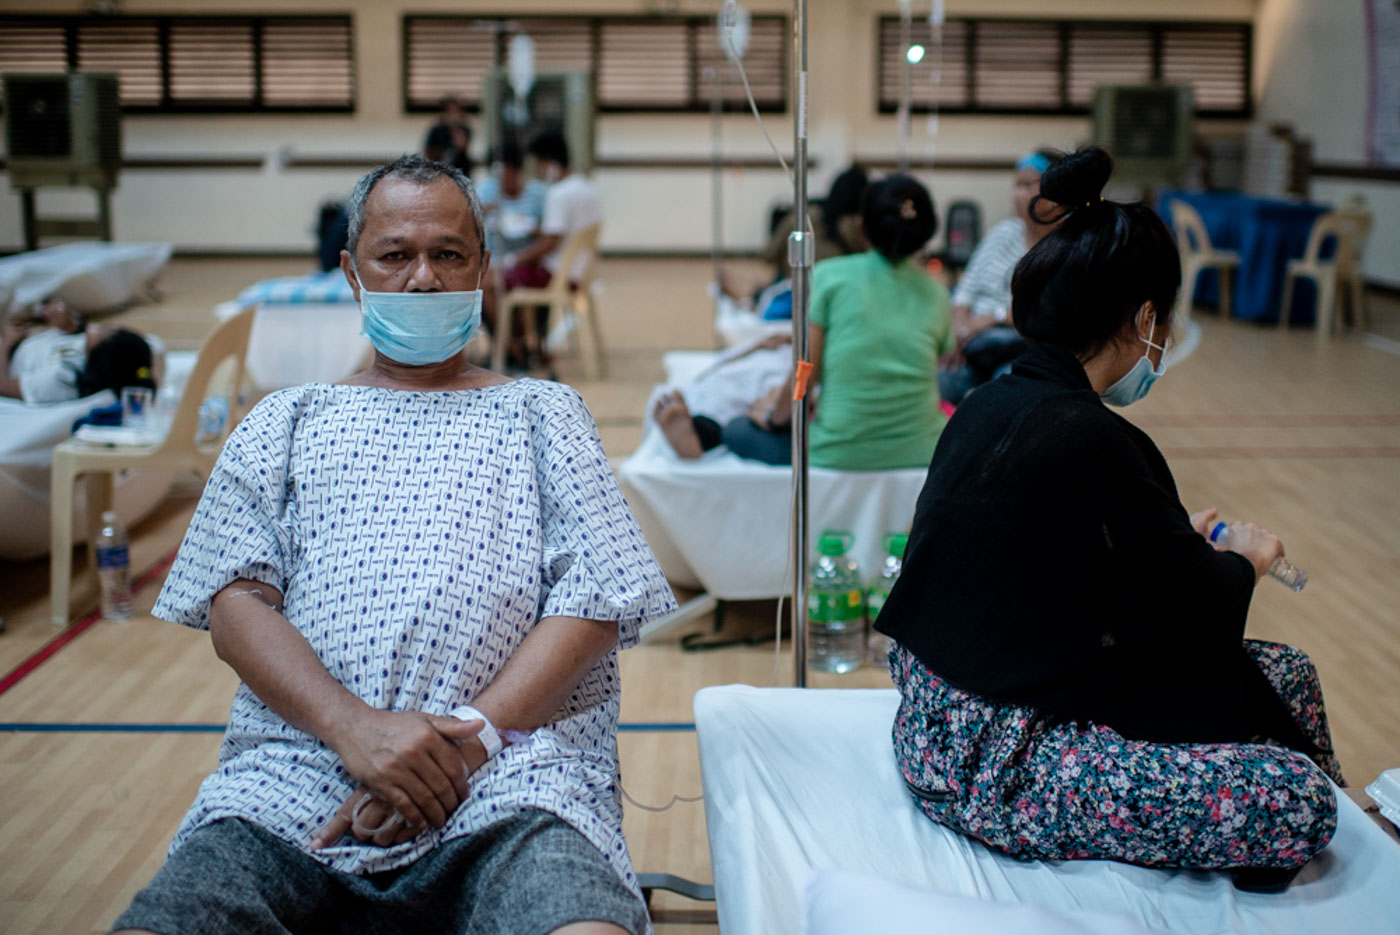 TAHO VENDOR. Mario Cau00f1ete is with his daughter at the basketball-gym-turned-patients-ward of National Kidney and Transplant Institute in Quezon City on Wednesday, June 27, a day after he was diagnosed with leptospirosis. Photo by Eloisa Lopez/Rappler